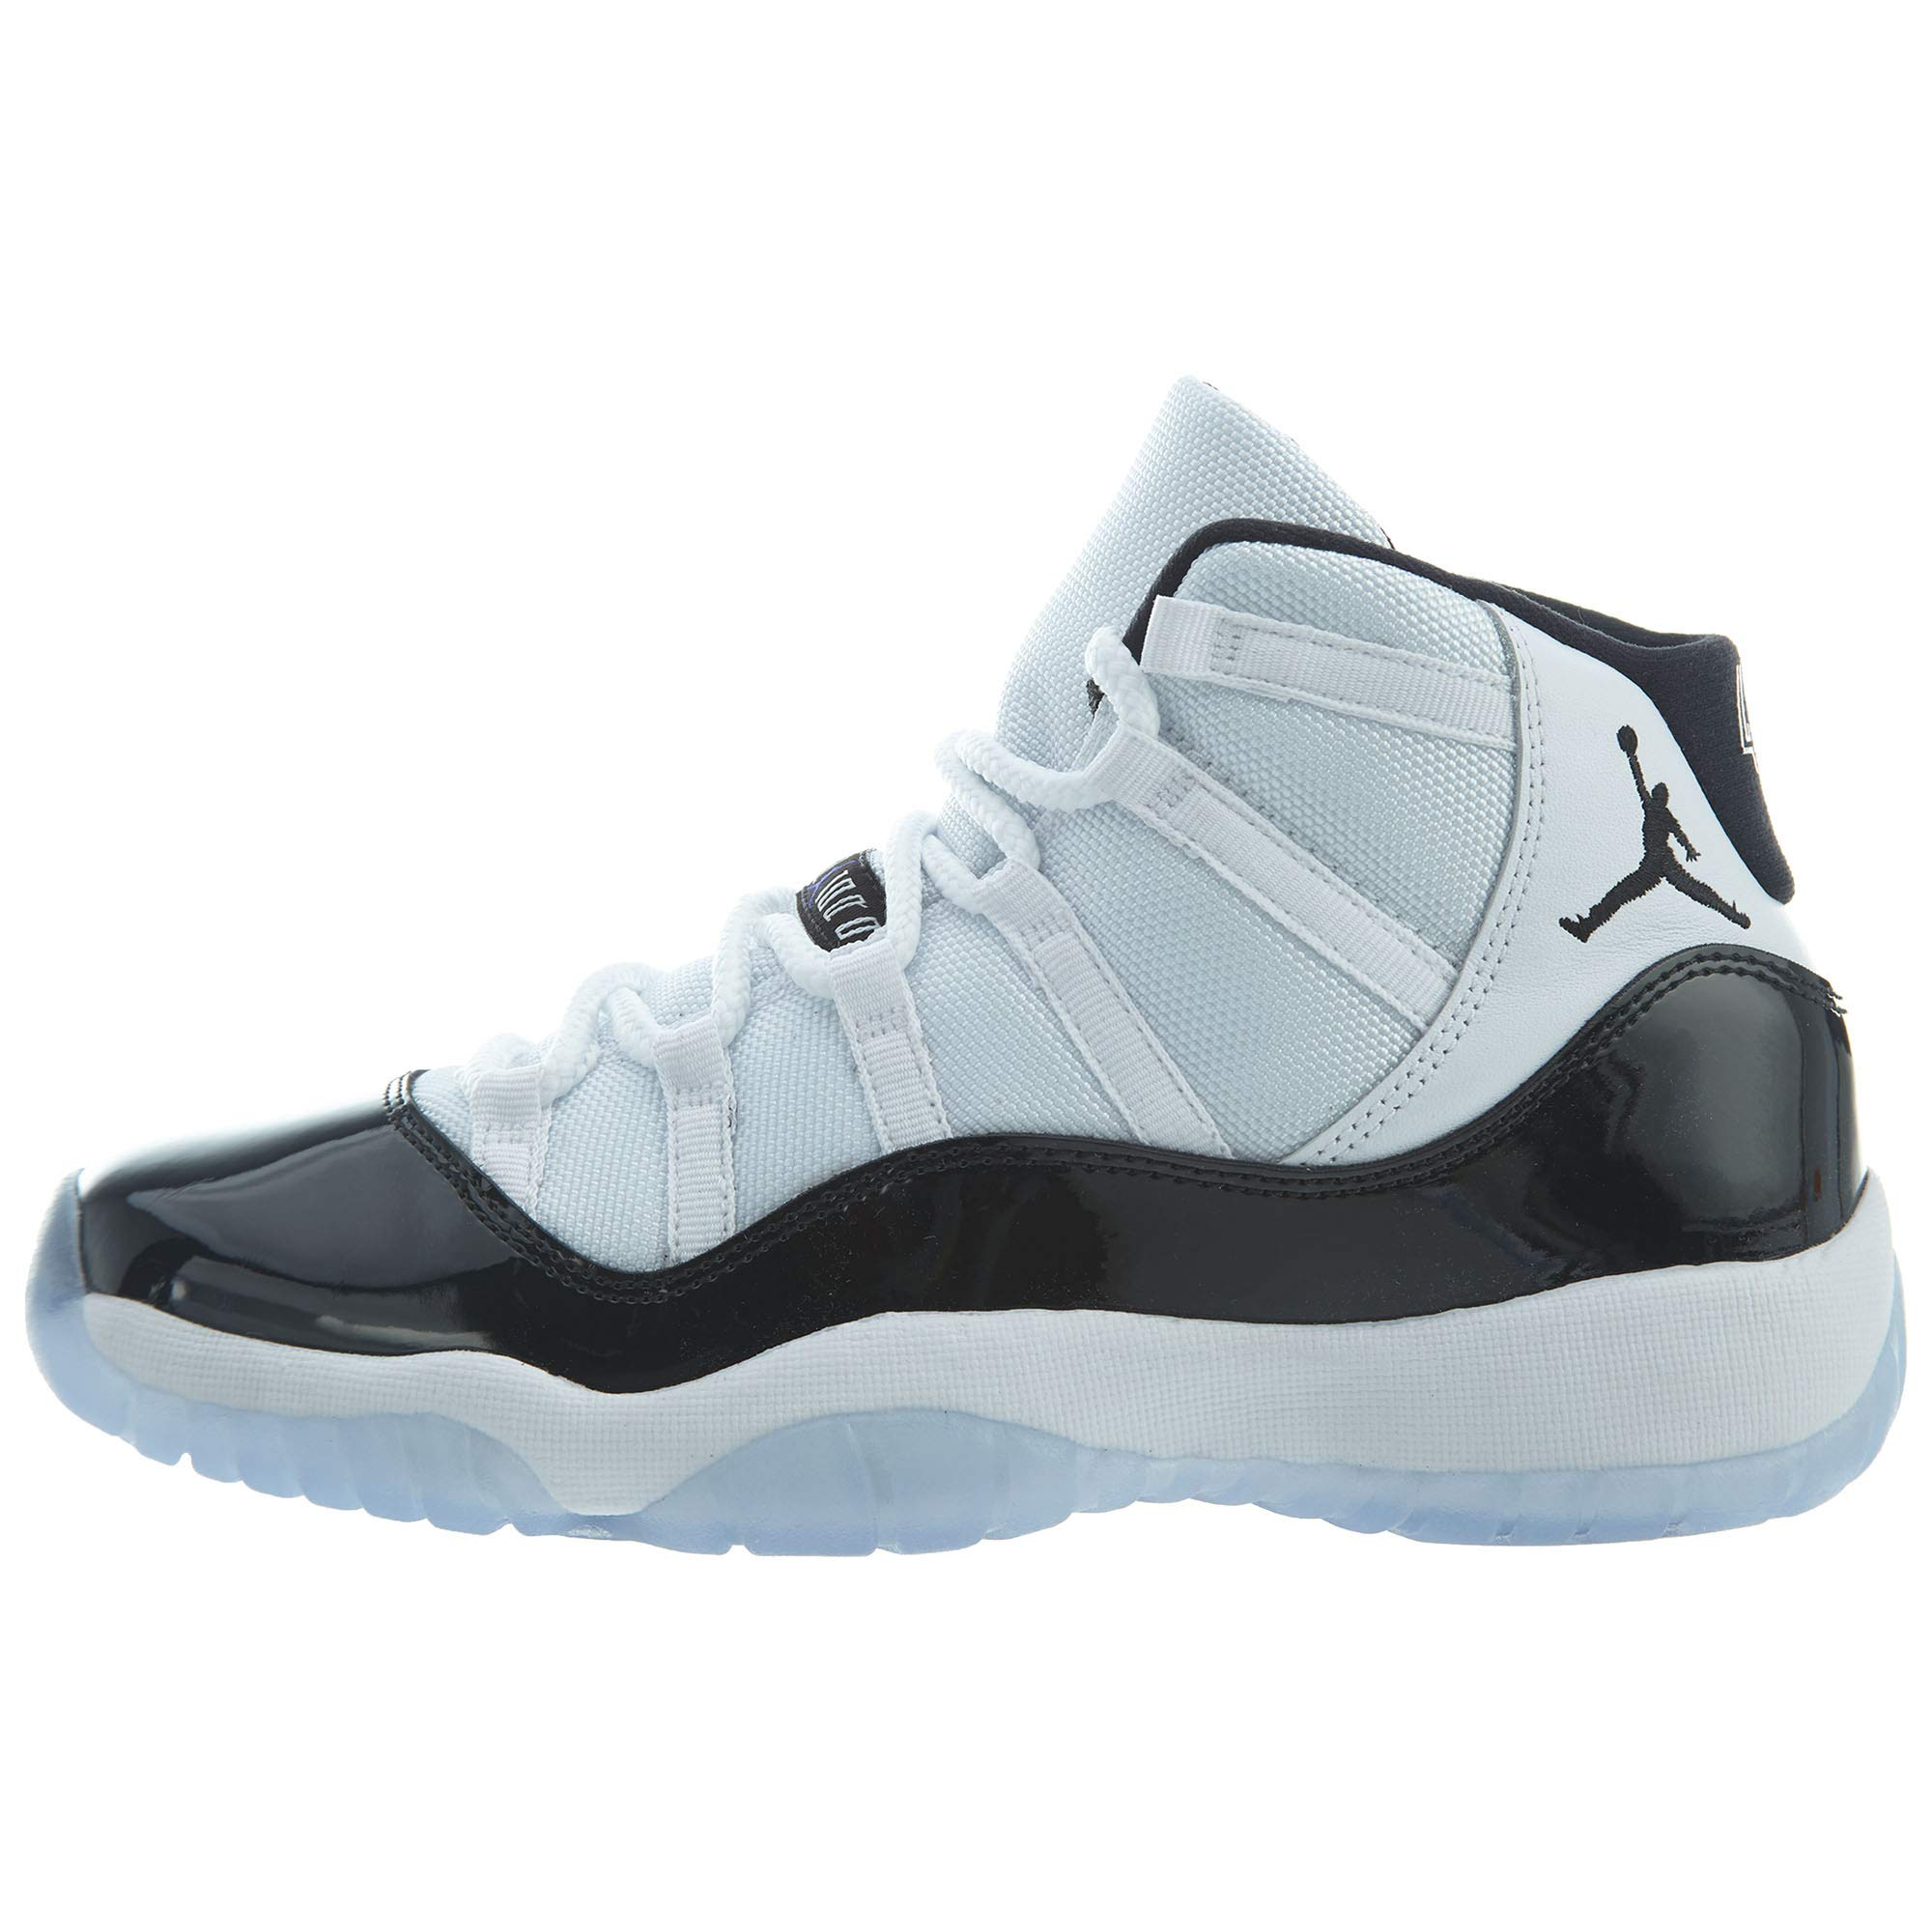 Jordan Boy's Retro 11''Concord White/Black-Concord (5 M US Big Kid)